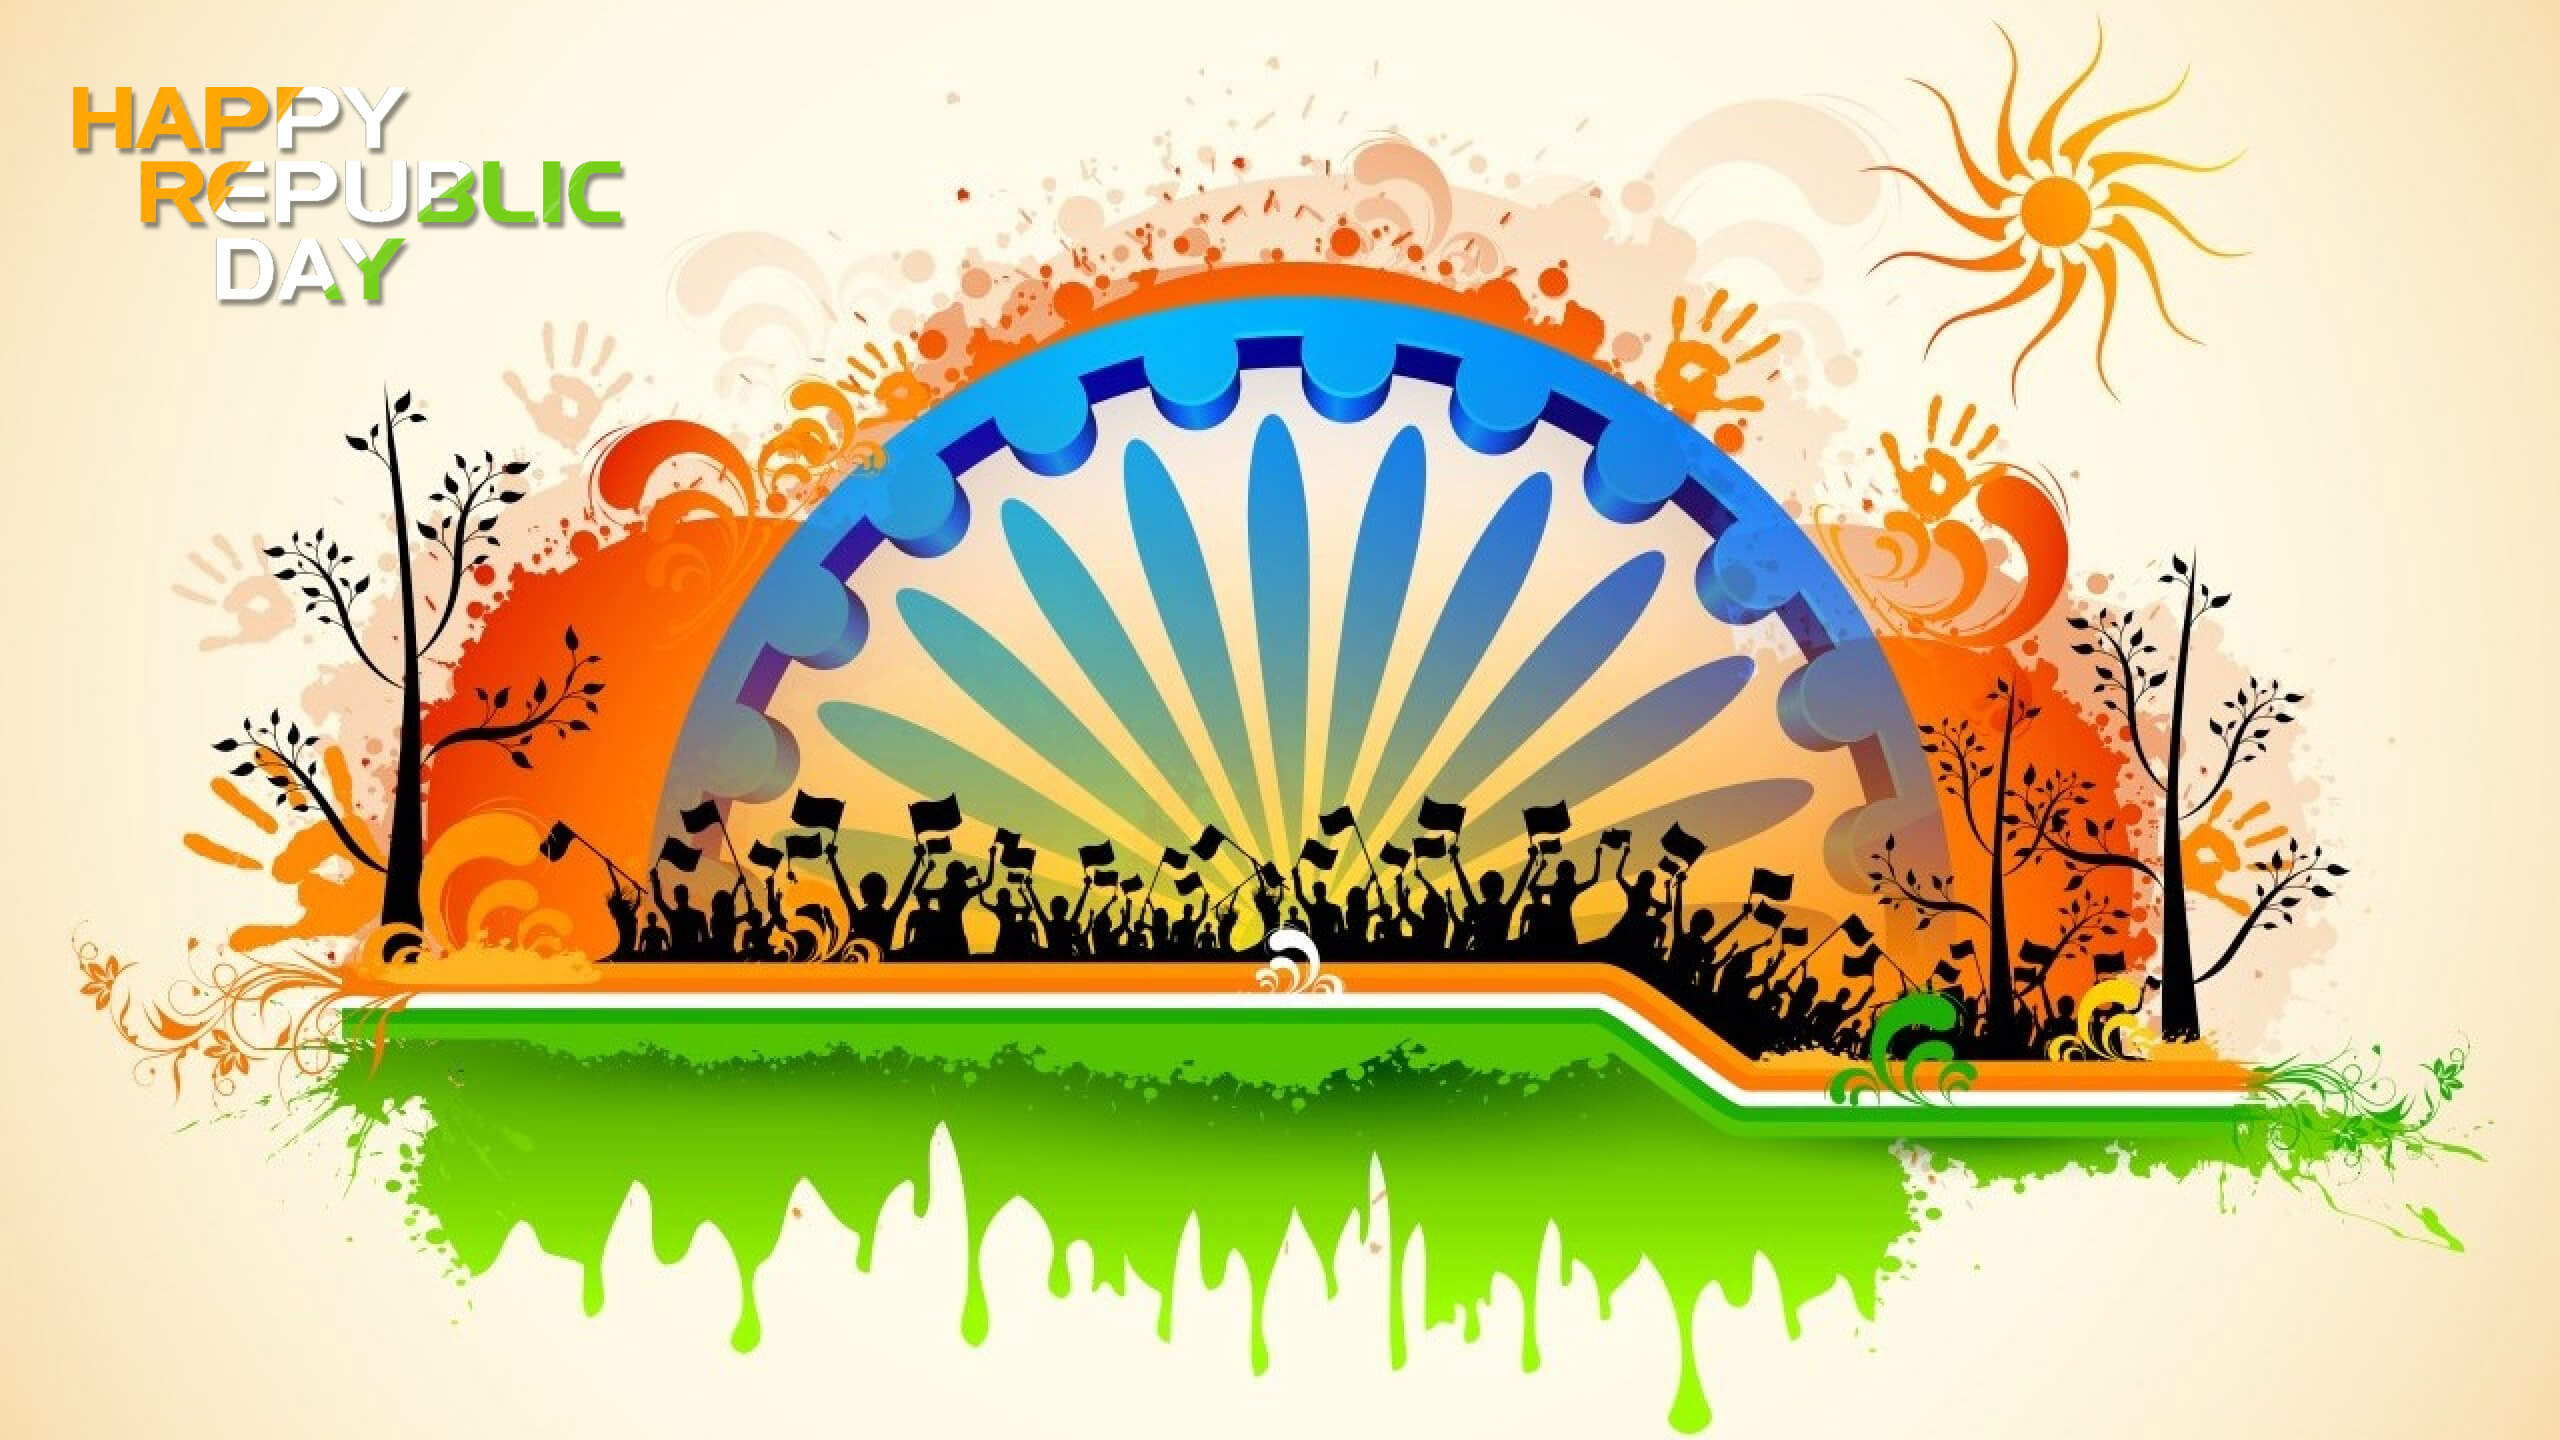 happy republic day wishes greetings india 26th january hd background wallpaper